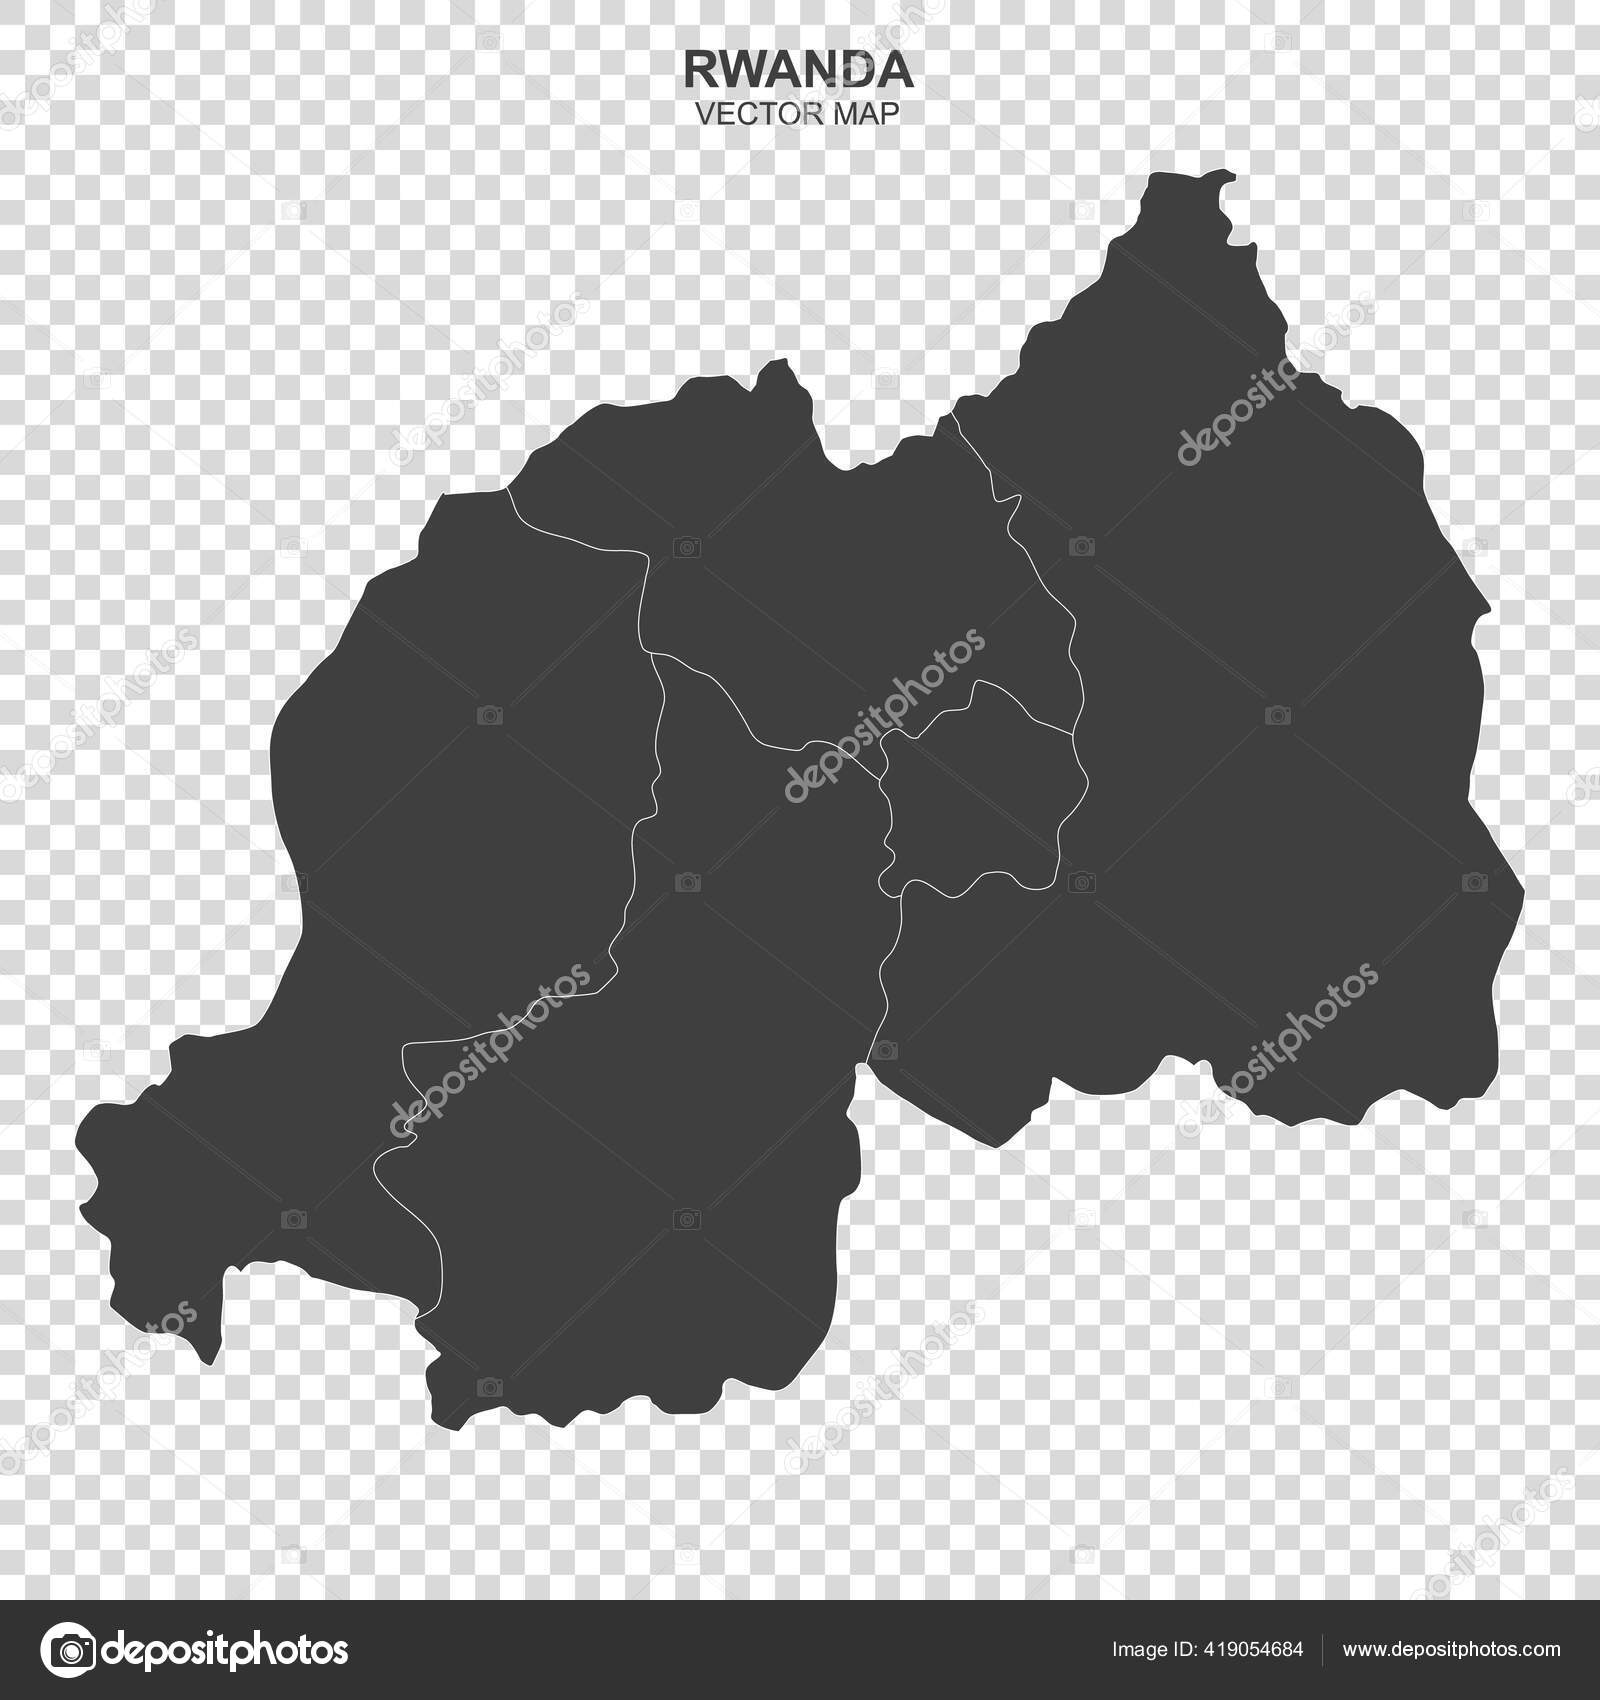 Image of: Map Rwanda Stock Vectors Royalty Free Map Rwanda Illustrations Depositphotos